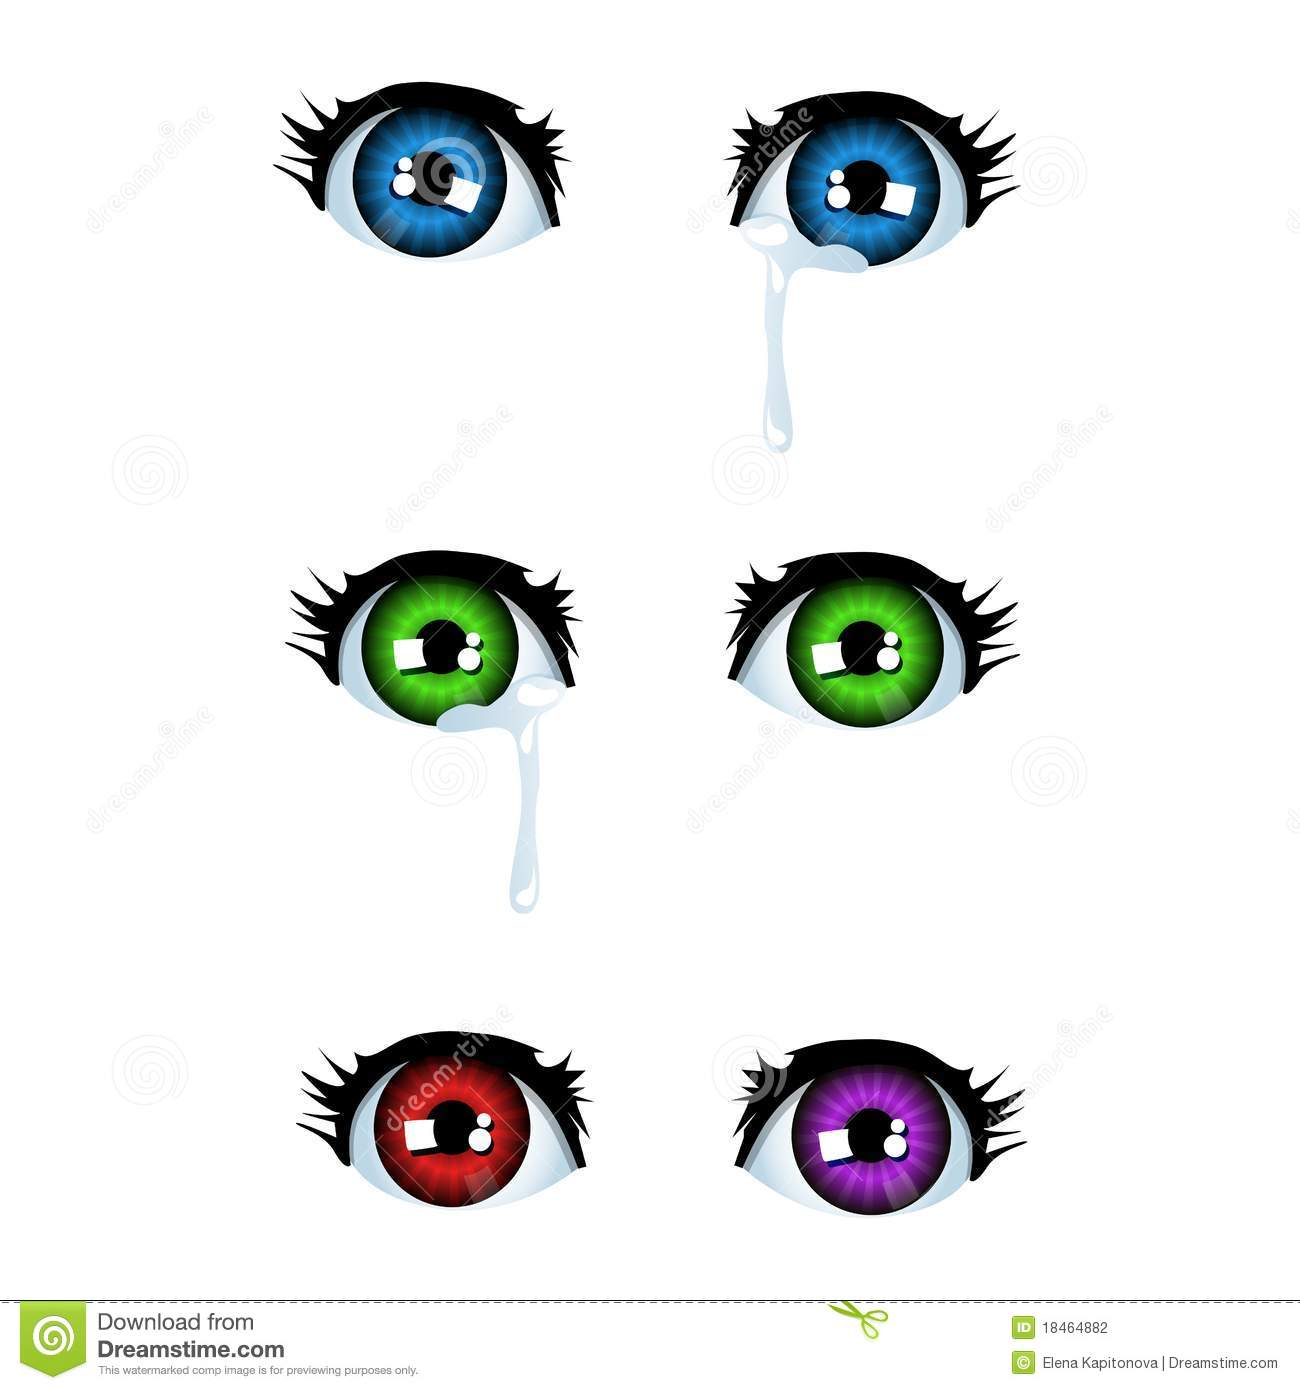 Anime Eyes Stock Vector. Illustration Of Painting, Eyelash